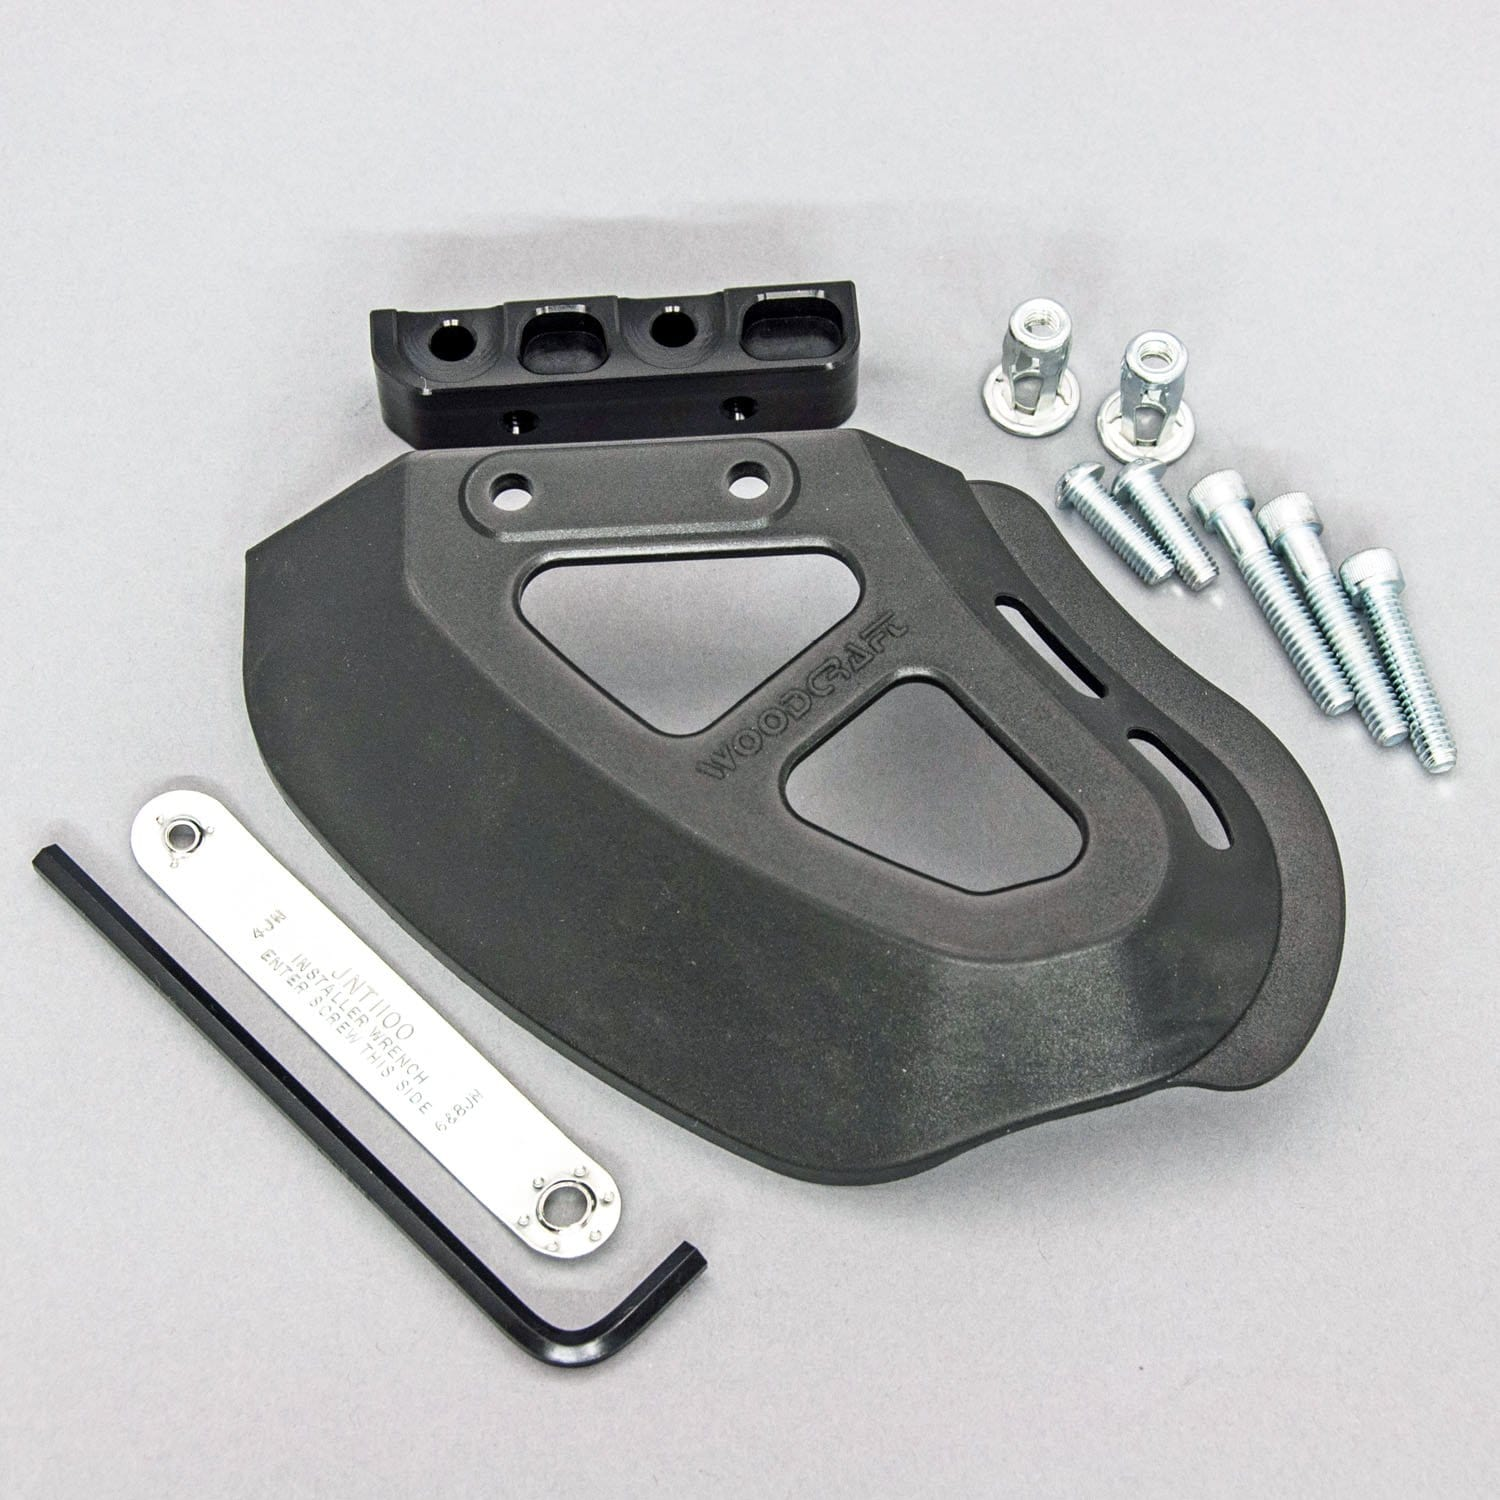 55-1100 Woodcraft Wide Coverage Toe Guard Kit - Woodcraft Technologies - Motorcycle Parts